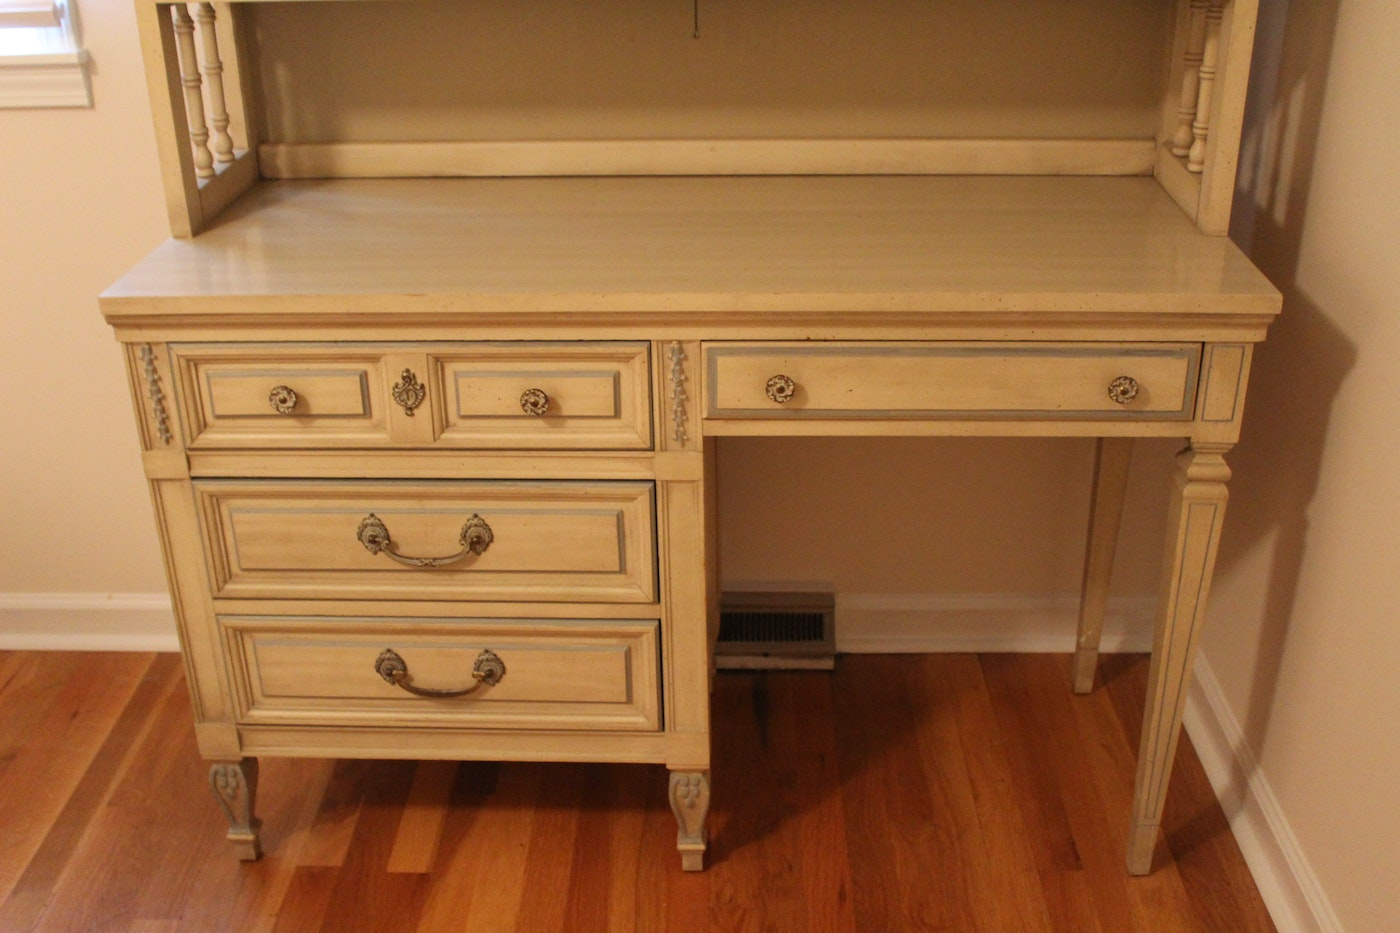 Vintage French Provincial Dixie Furniture Desk and Hutch ...